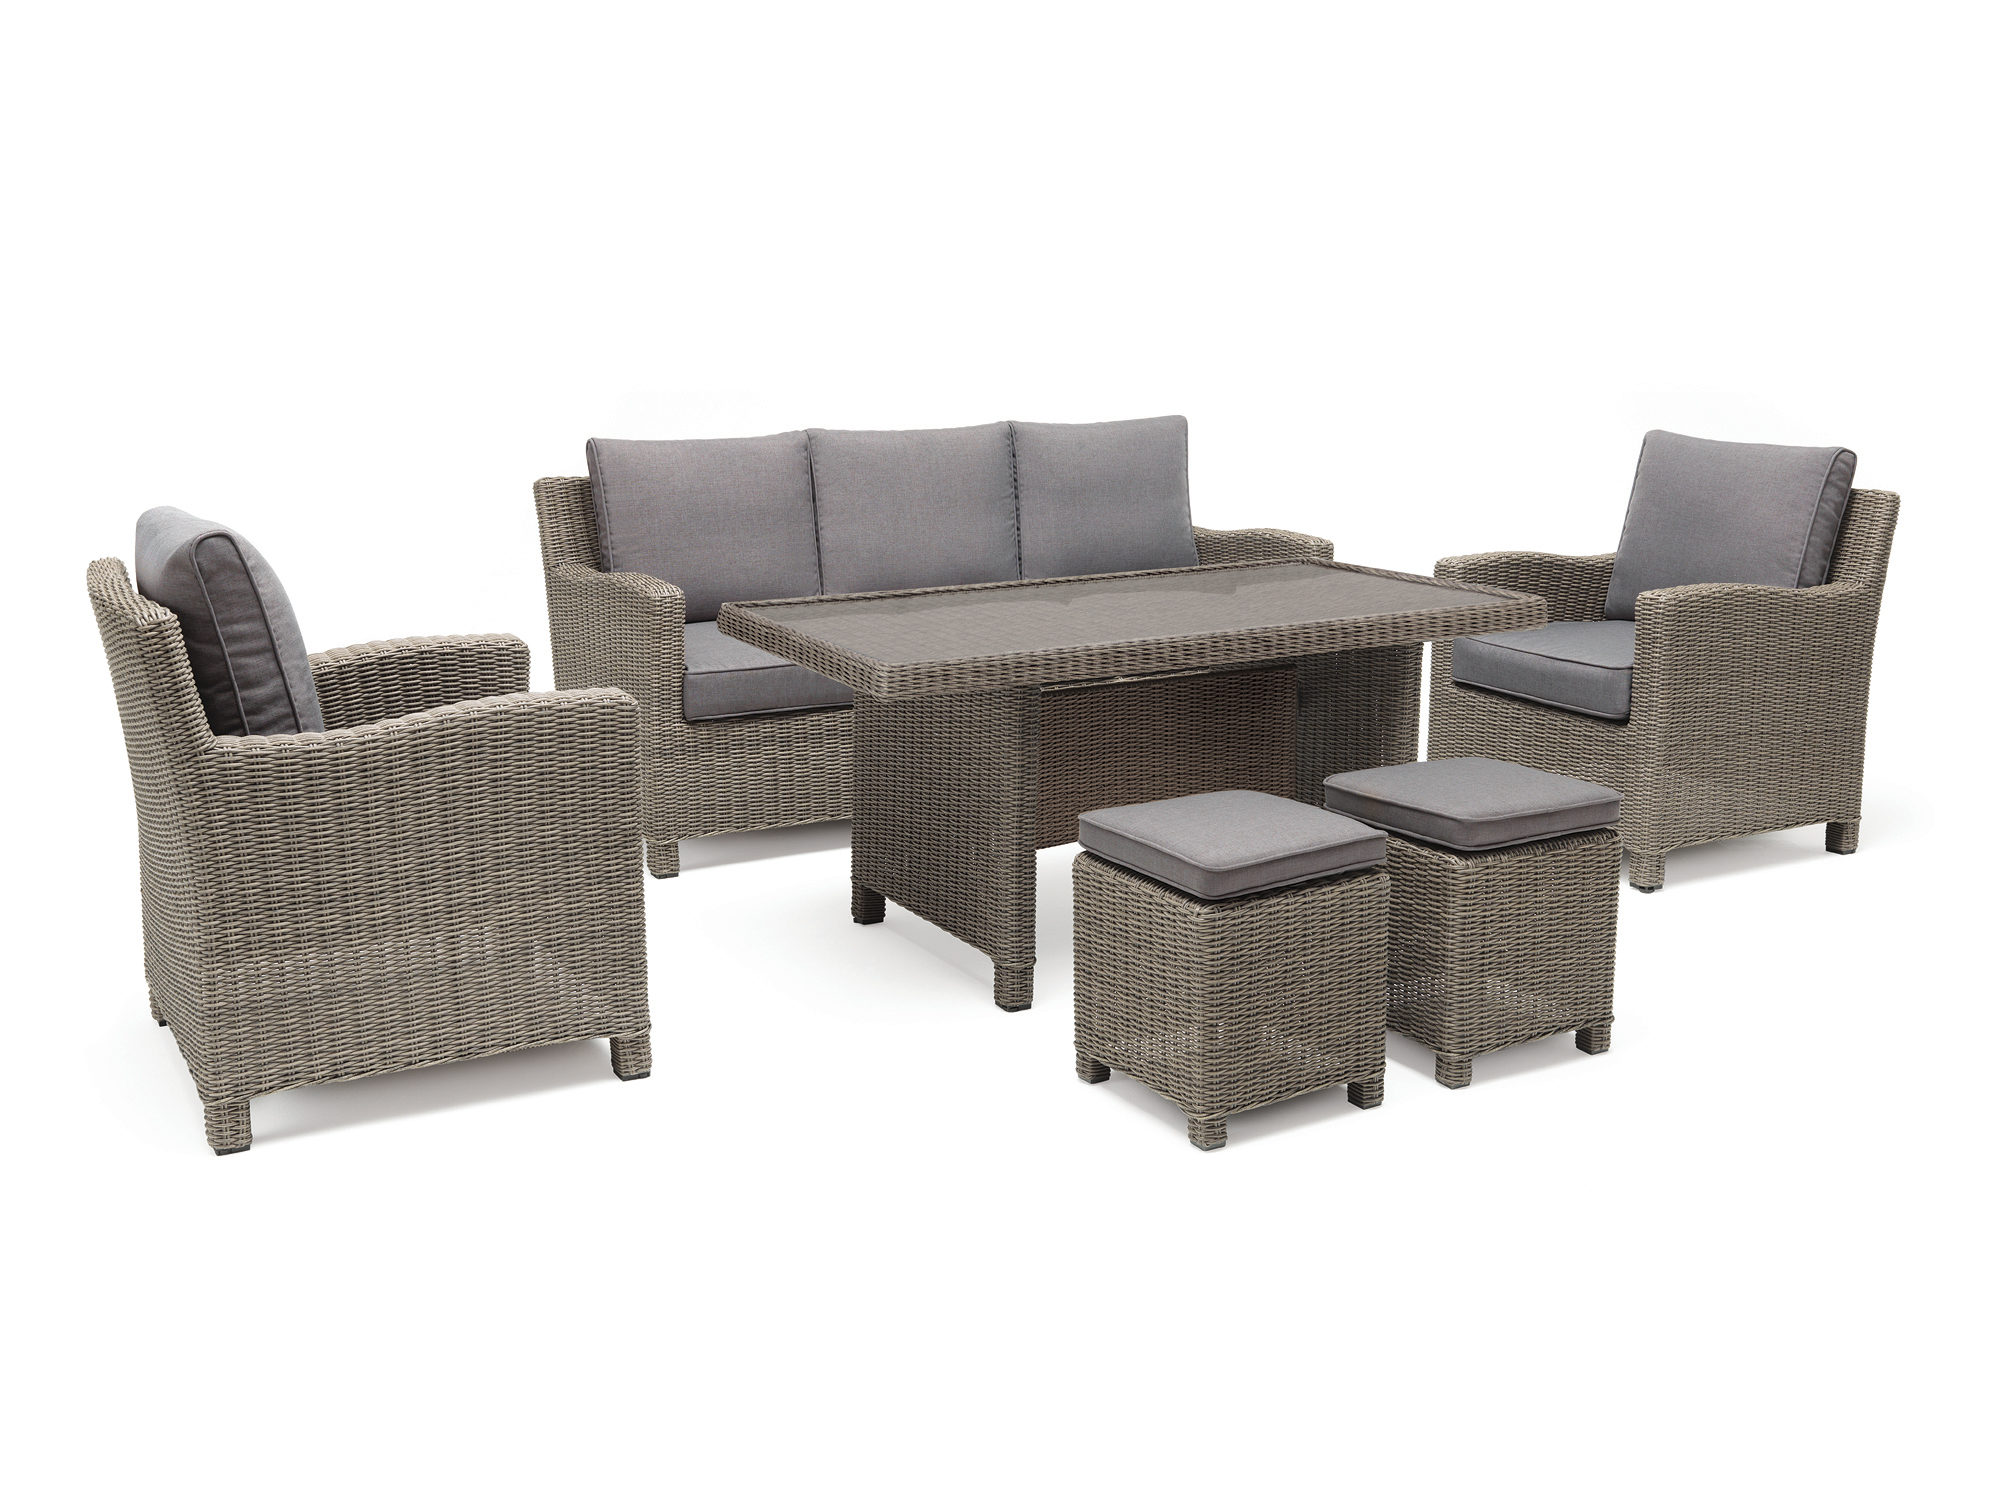 Kettler Palma Sofa Set Rattan 2018 Garden Furniture